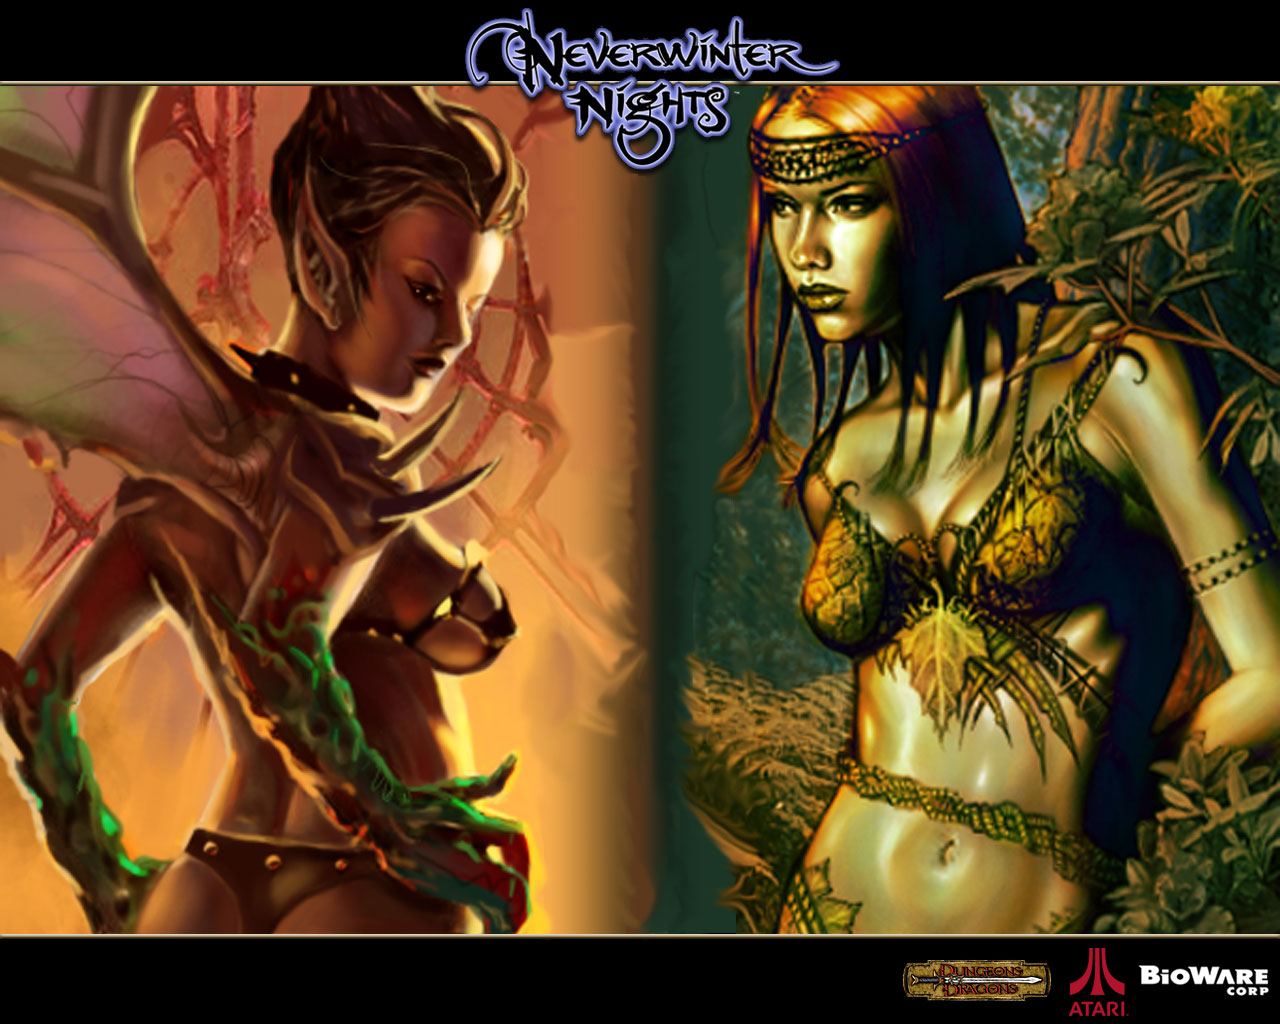 succubus dryad Succube e driade, portrait di gioco Videogame: NeverWinter Nights (2002-12) © Interplay, Wizards of the Coast e Hasbro